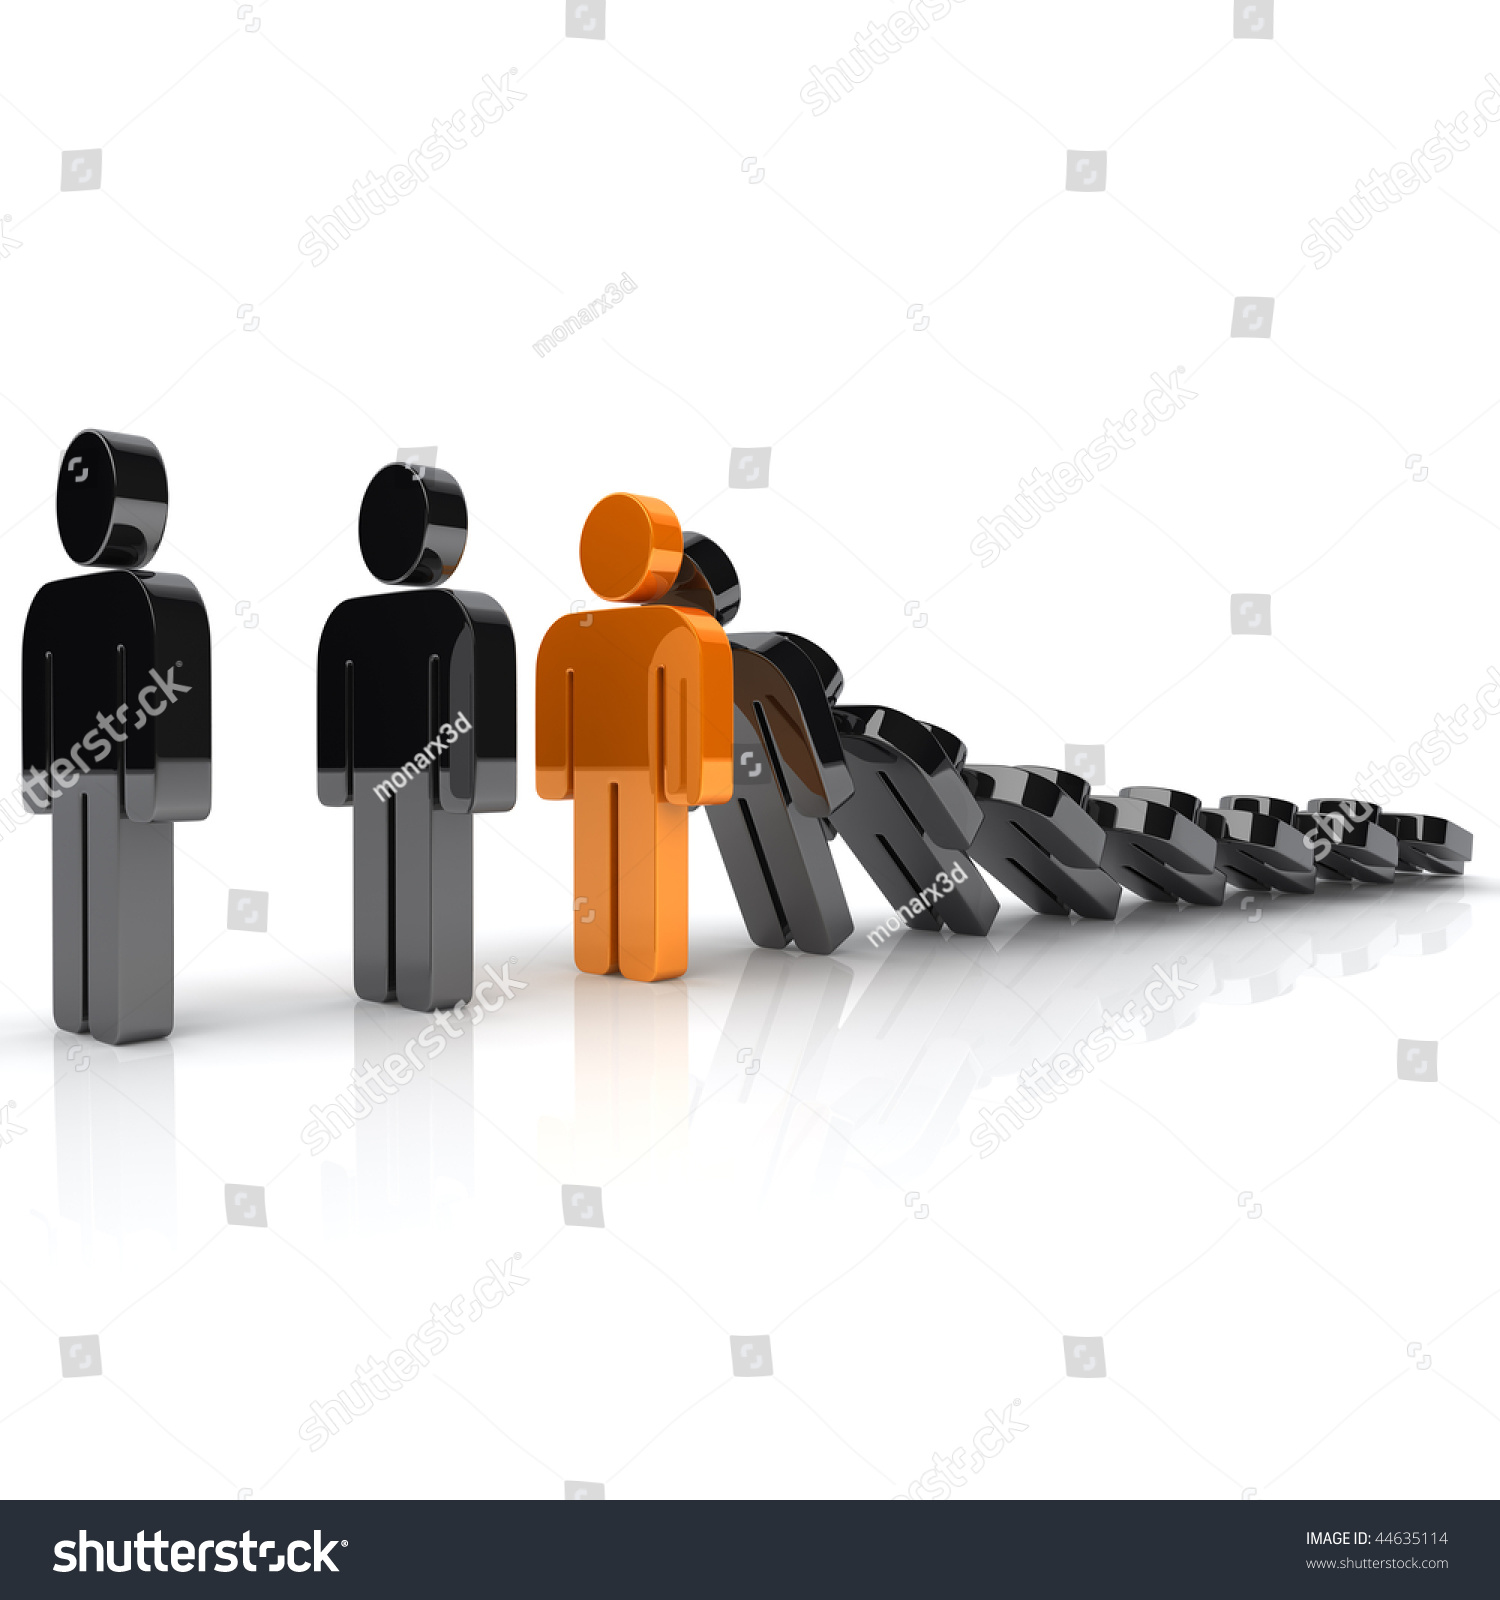 illustration strong orange man domino effect stock illustration illustration of strong orange man and domino effect